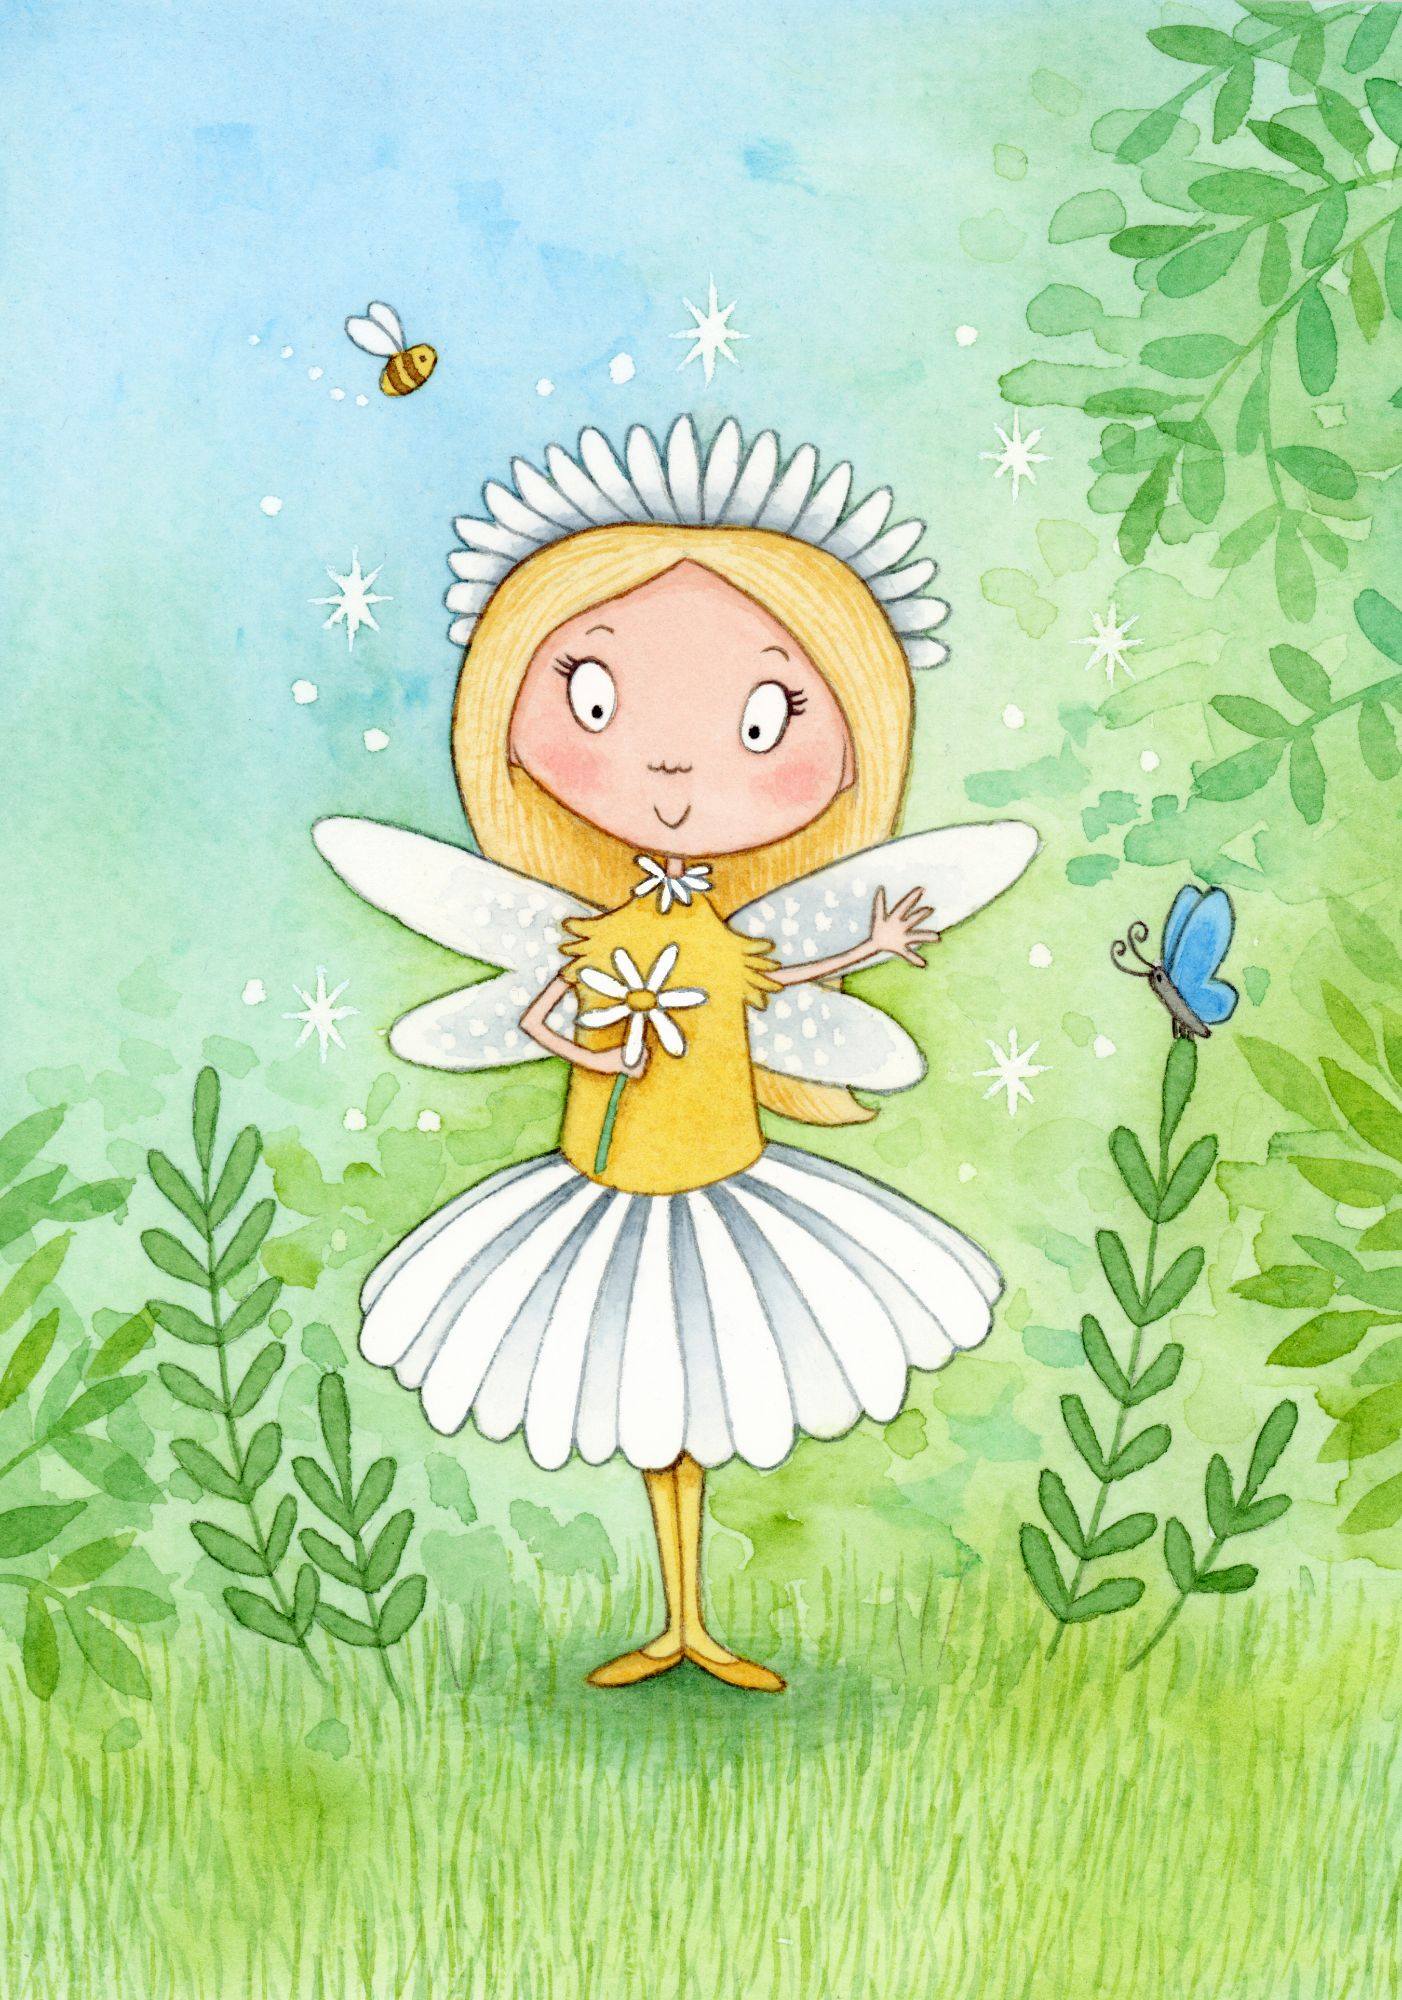 Fairy children's illustration by Emma Allen